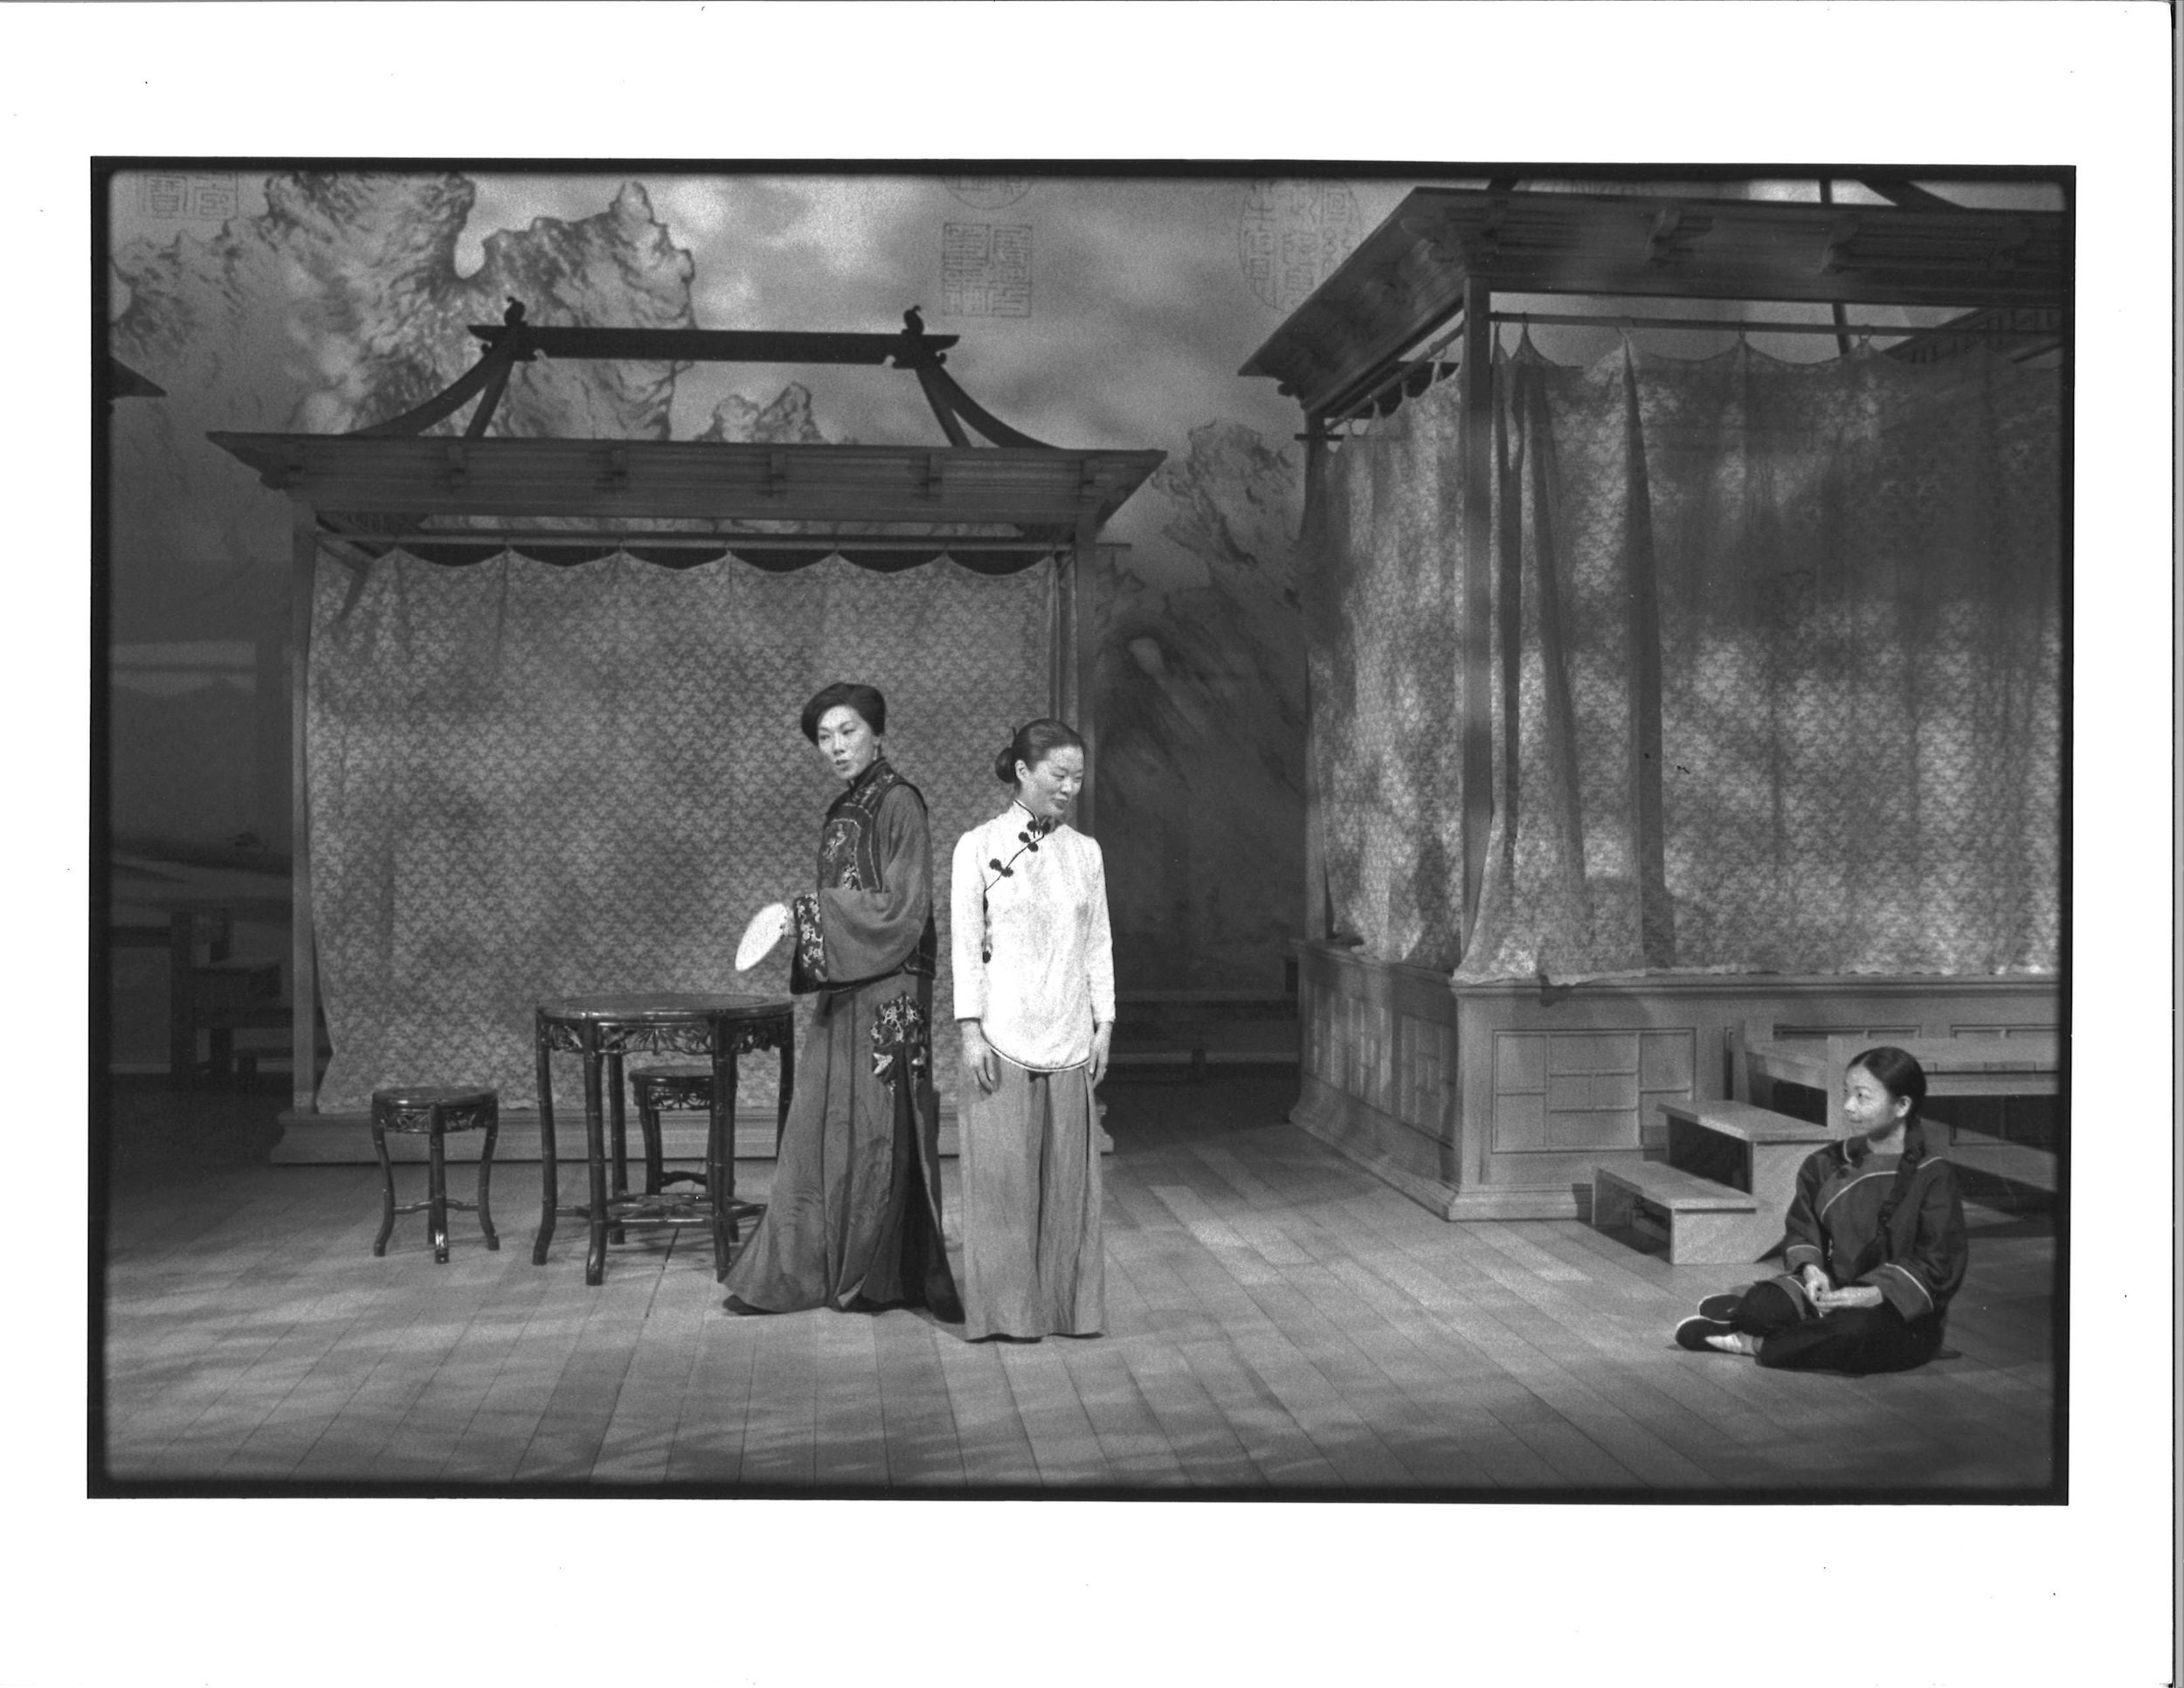 Jodi Long, Lianna Pai, and Julyana Soelistyo Photo by Michal Daniels, from The Public Theater production in 1996.